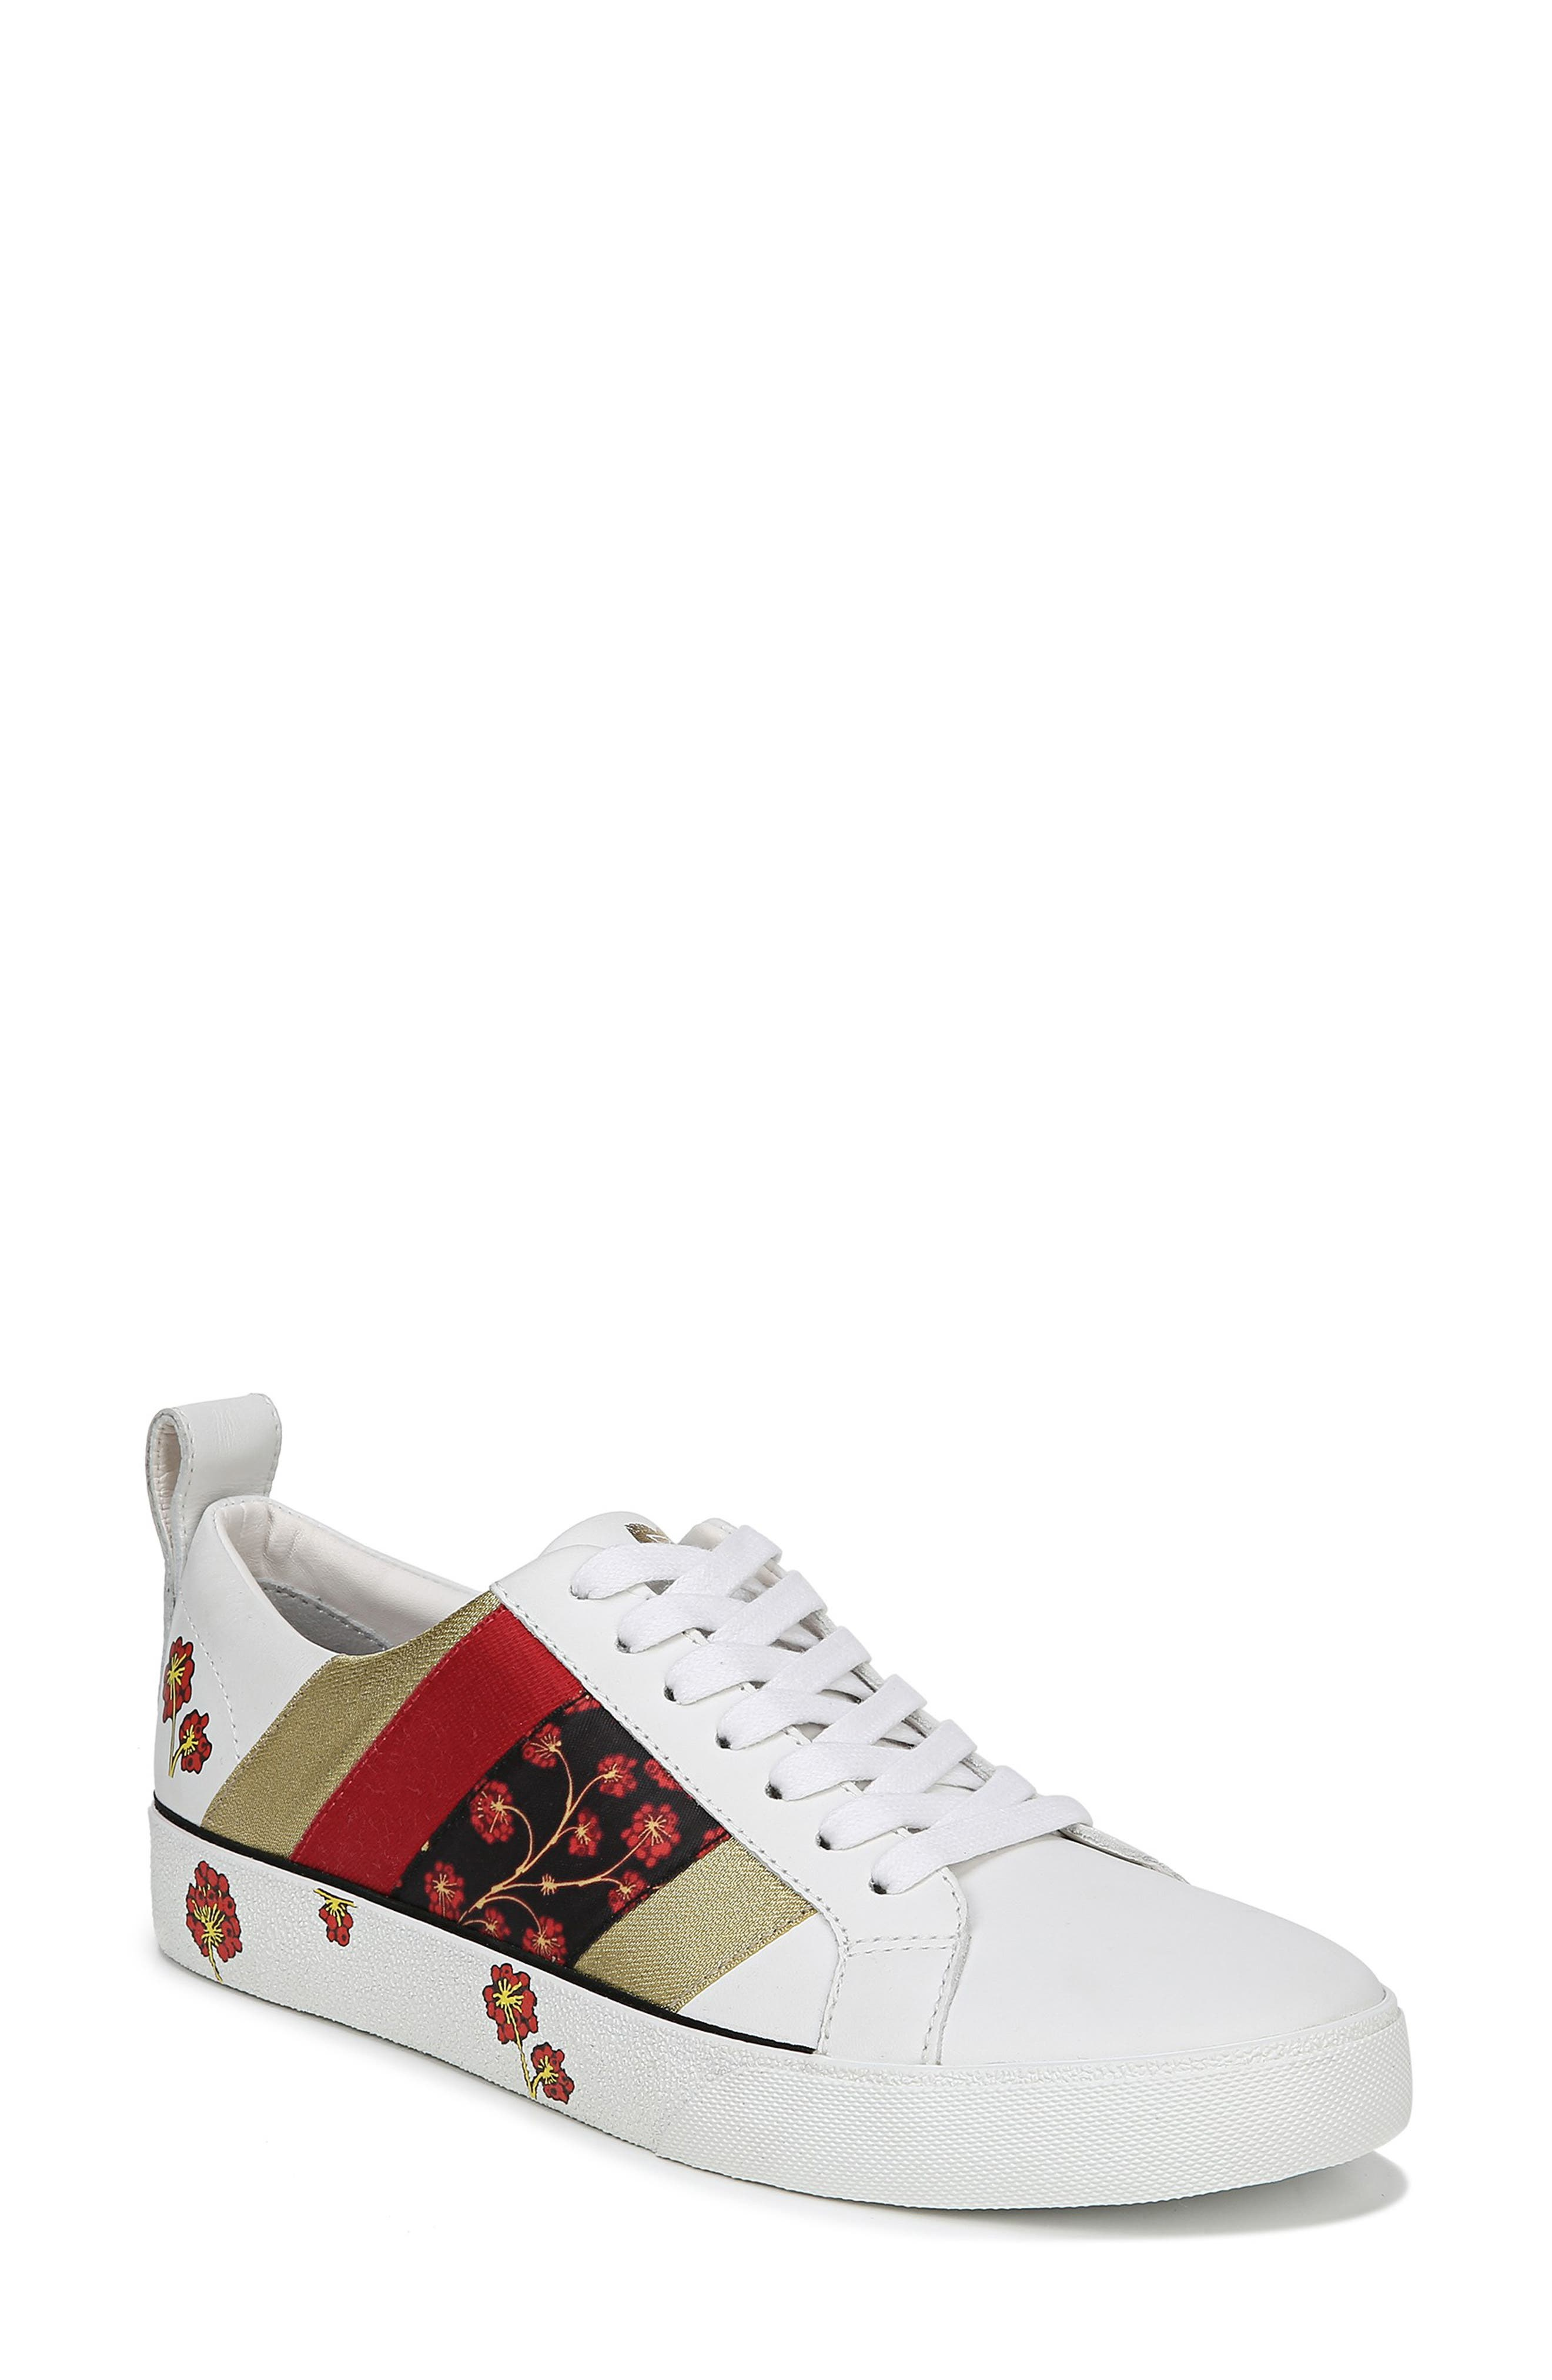 Tess Lace-Up Sneaker,                         Main,                         color, WHITE/ RED